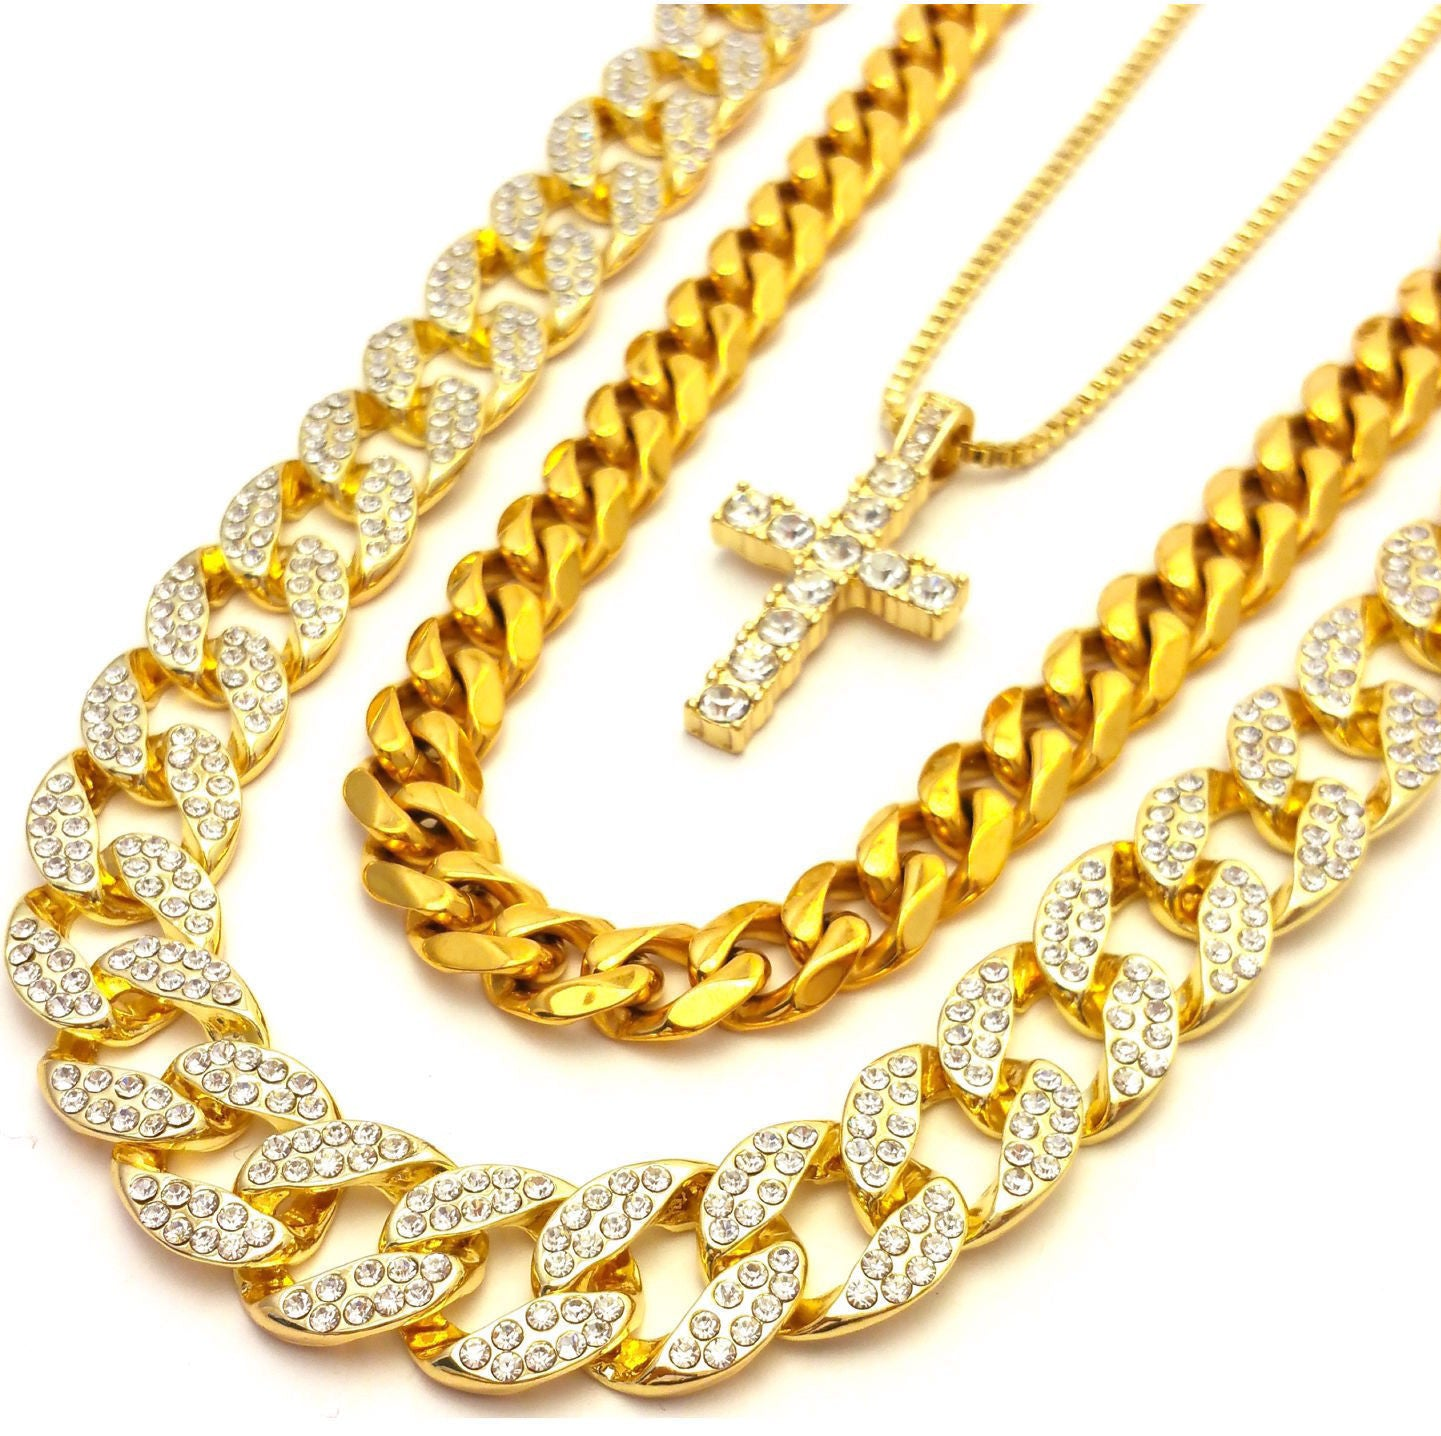 gold jewellery chain product